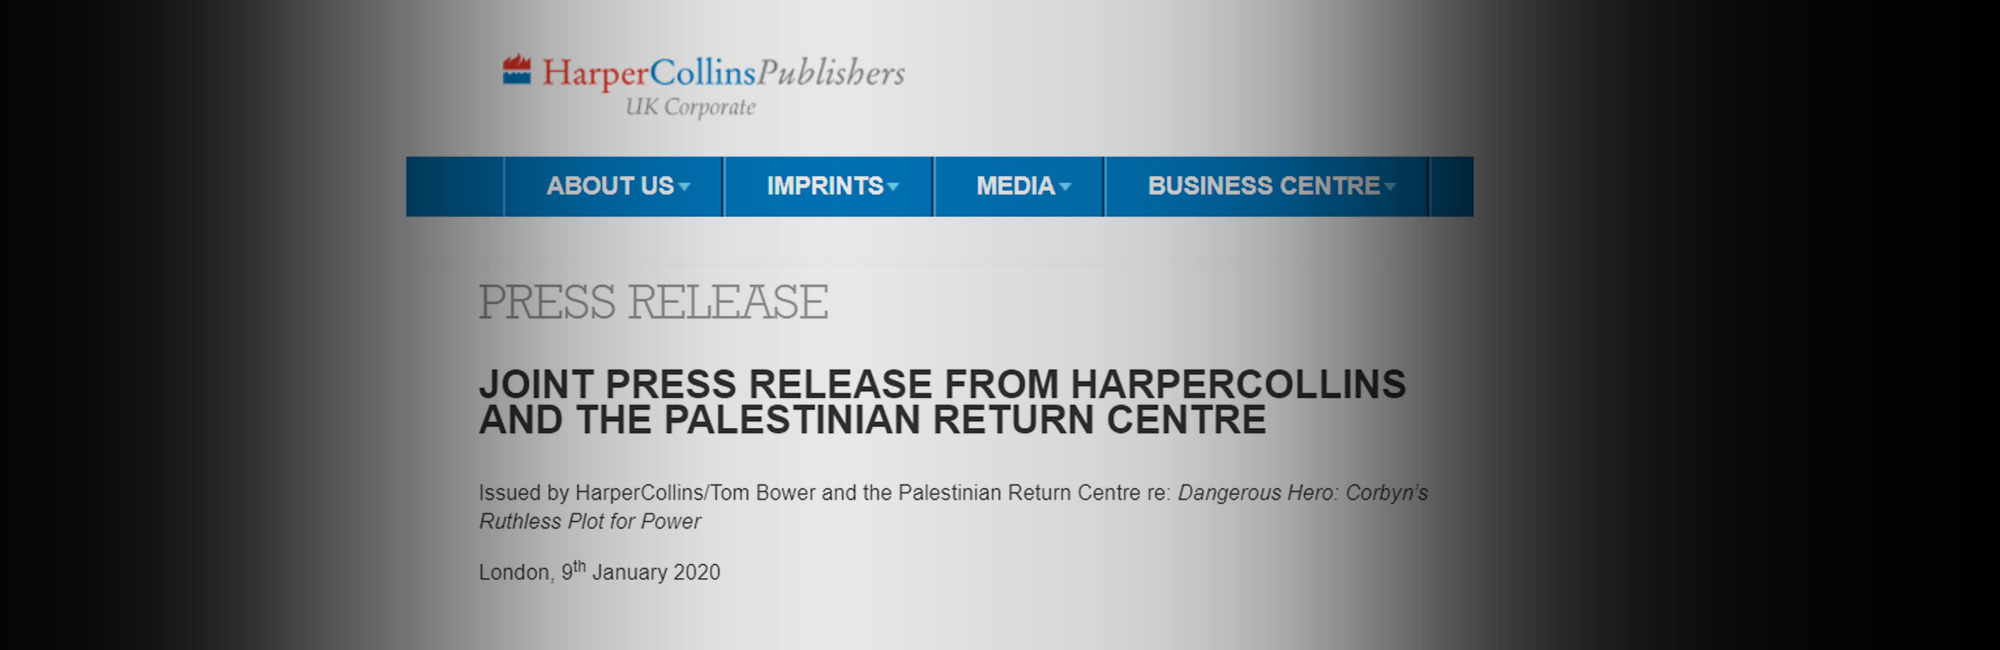 Harper Collins and Tom Bower withdraw false and defamatory allegations against the PRC